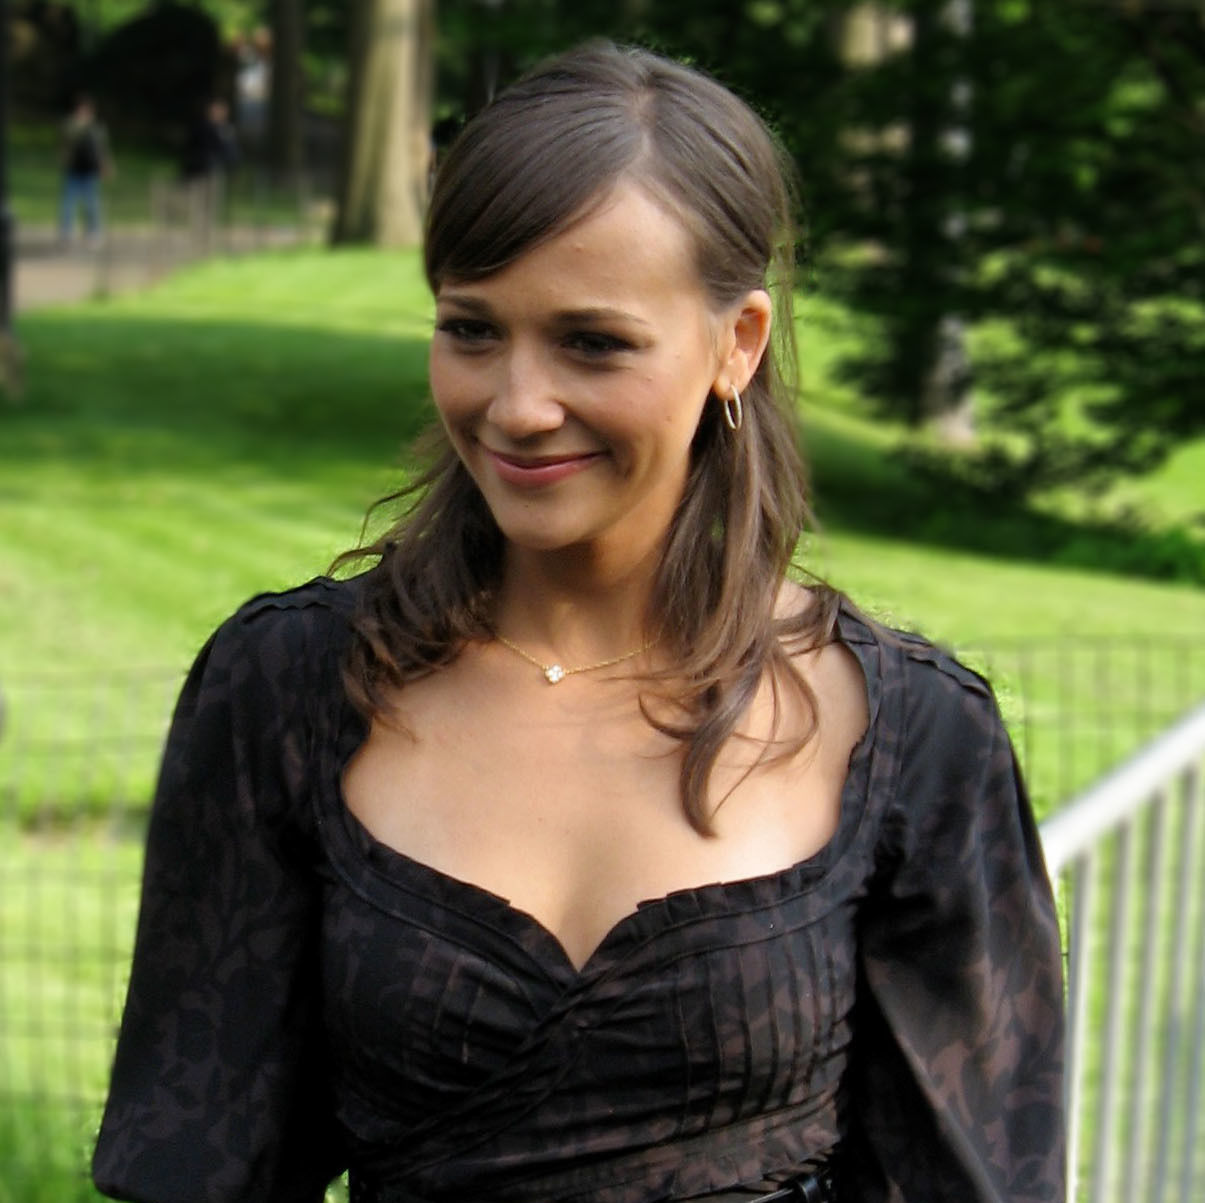 Rashida jones gf6paq